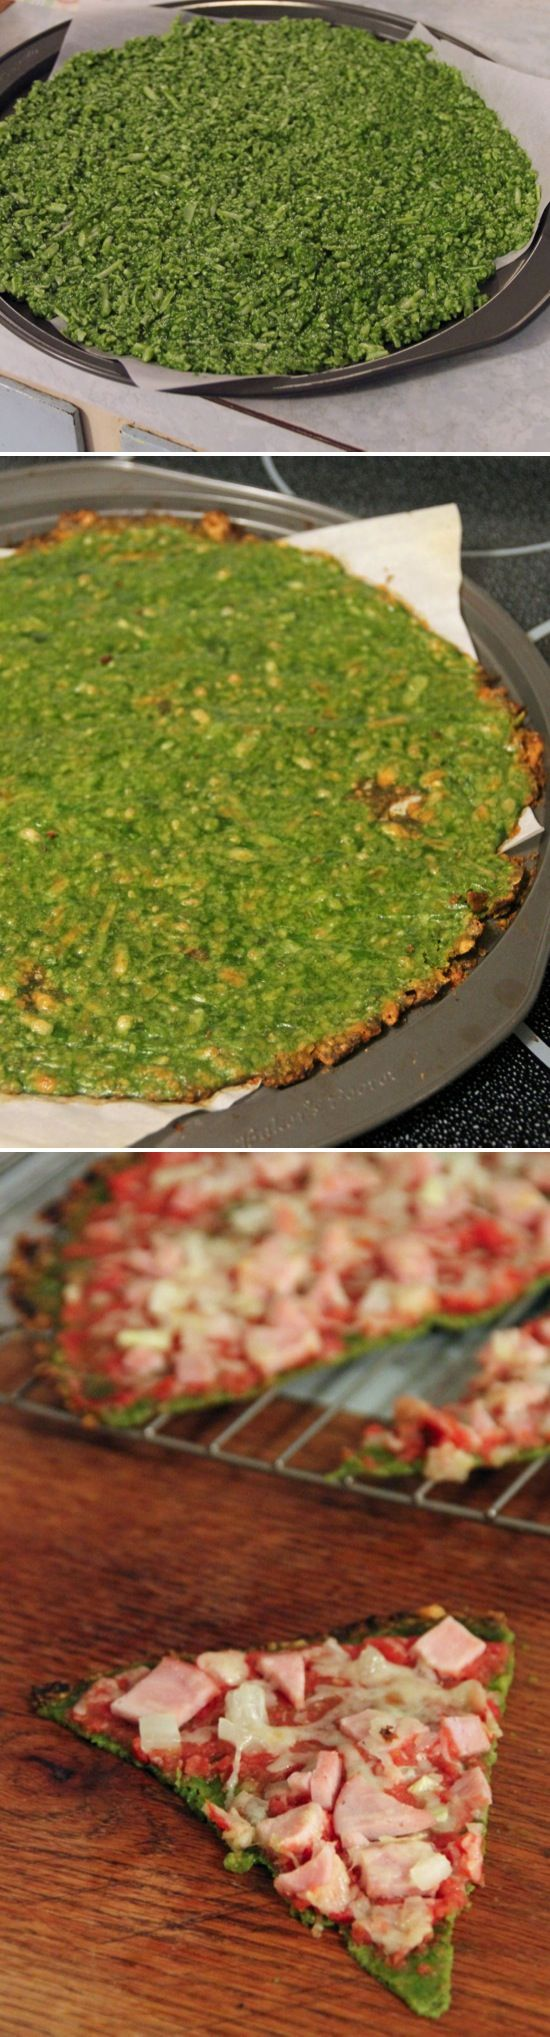 Pizza. Healthy. Gluten Free. Low Carb. Yummy? It doesn't get any better than this - Spinach Crust Pizza